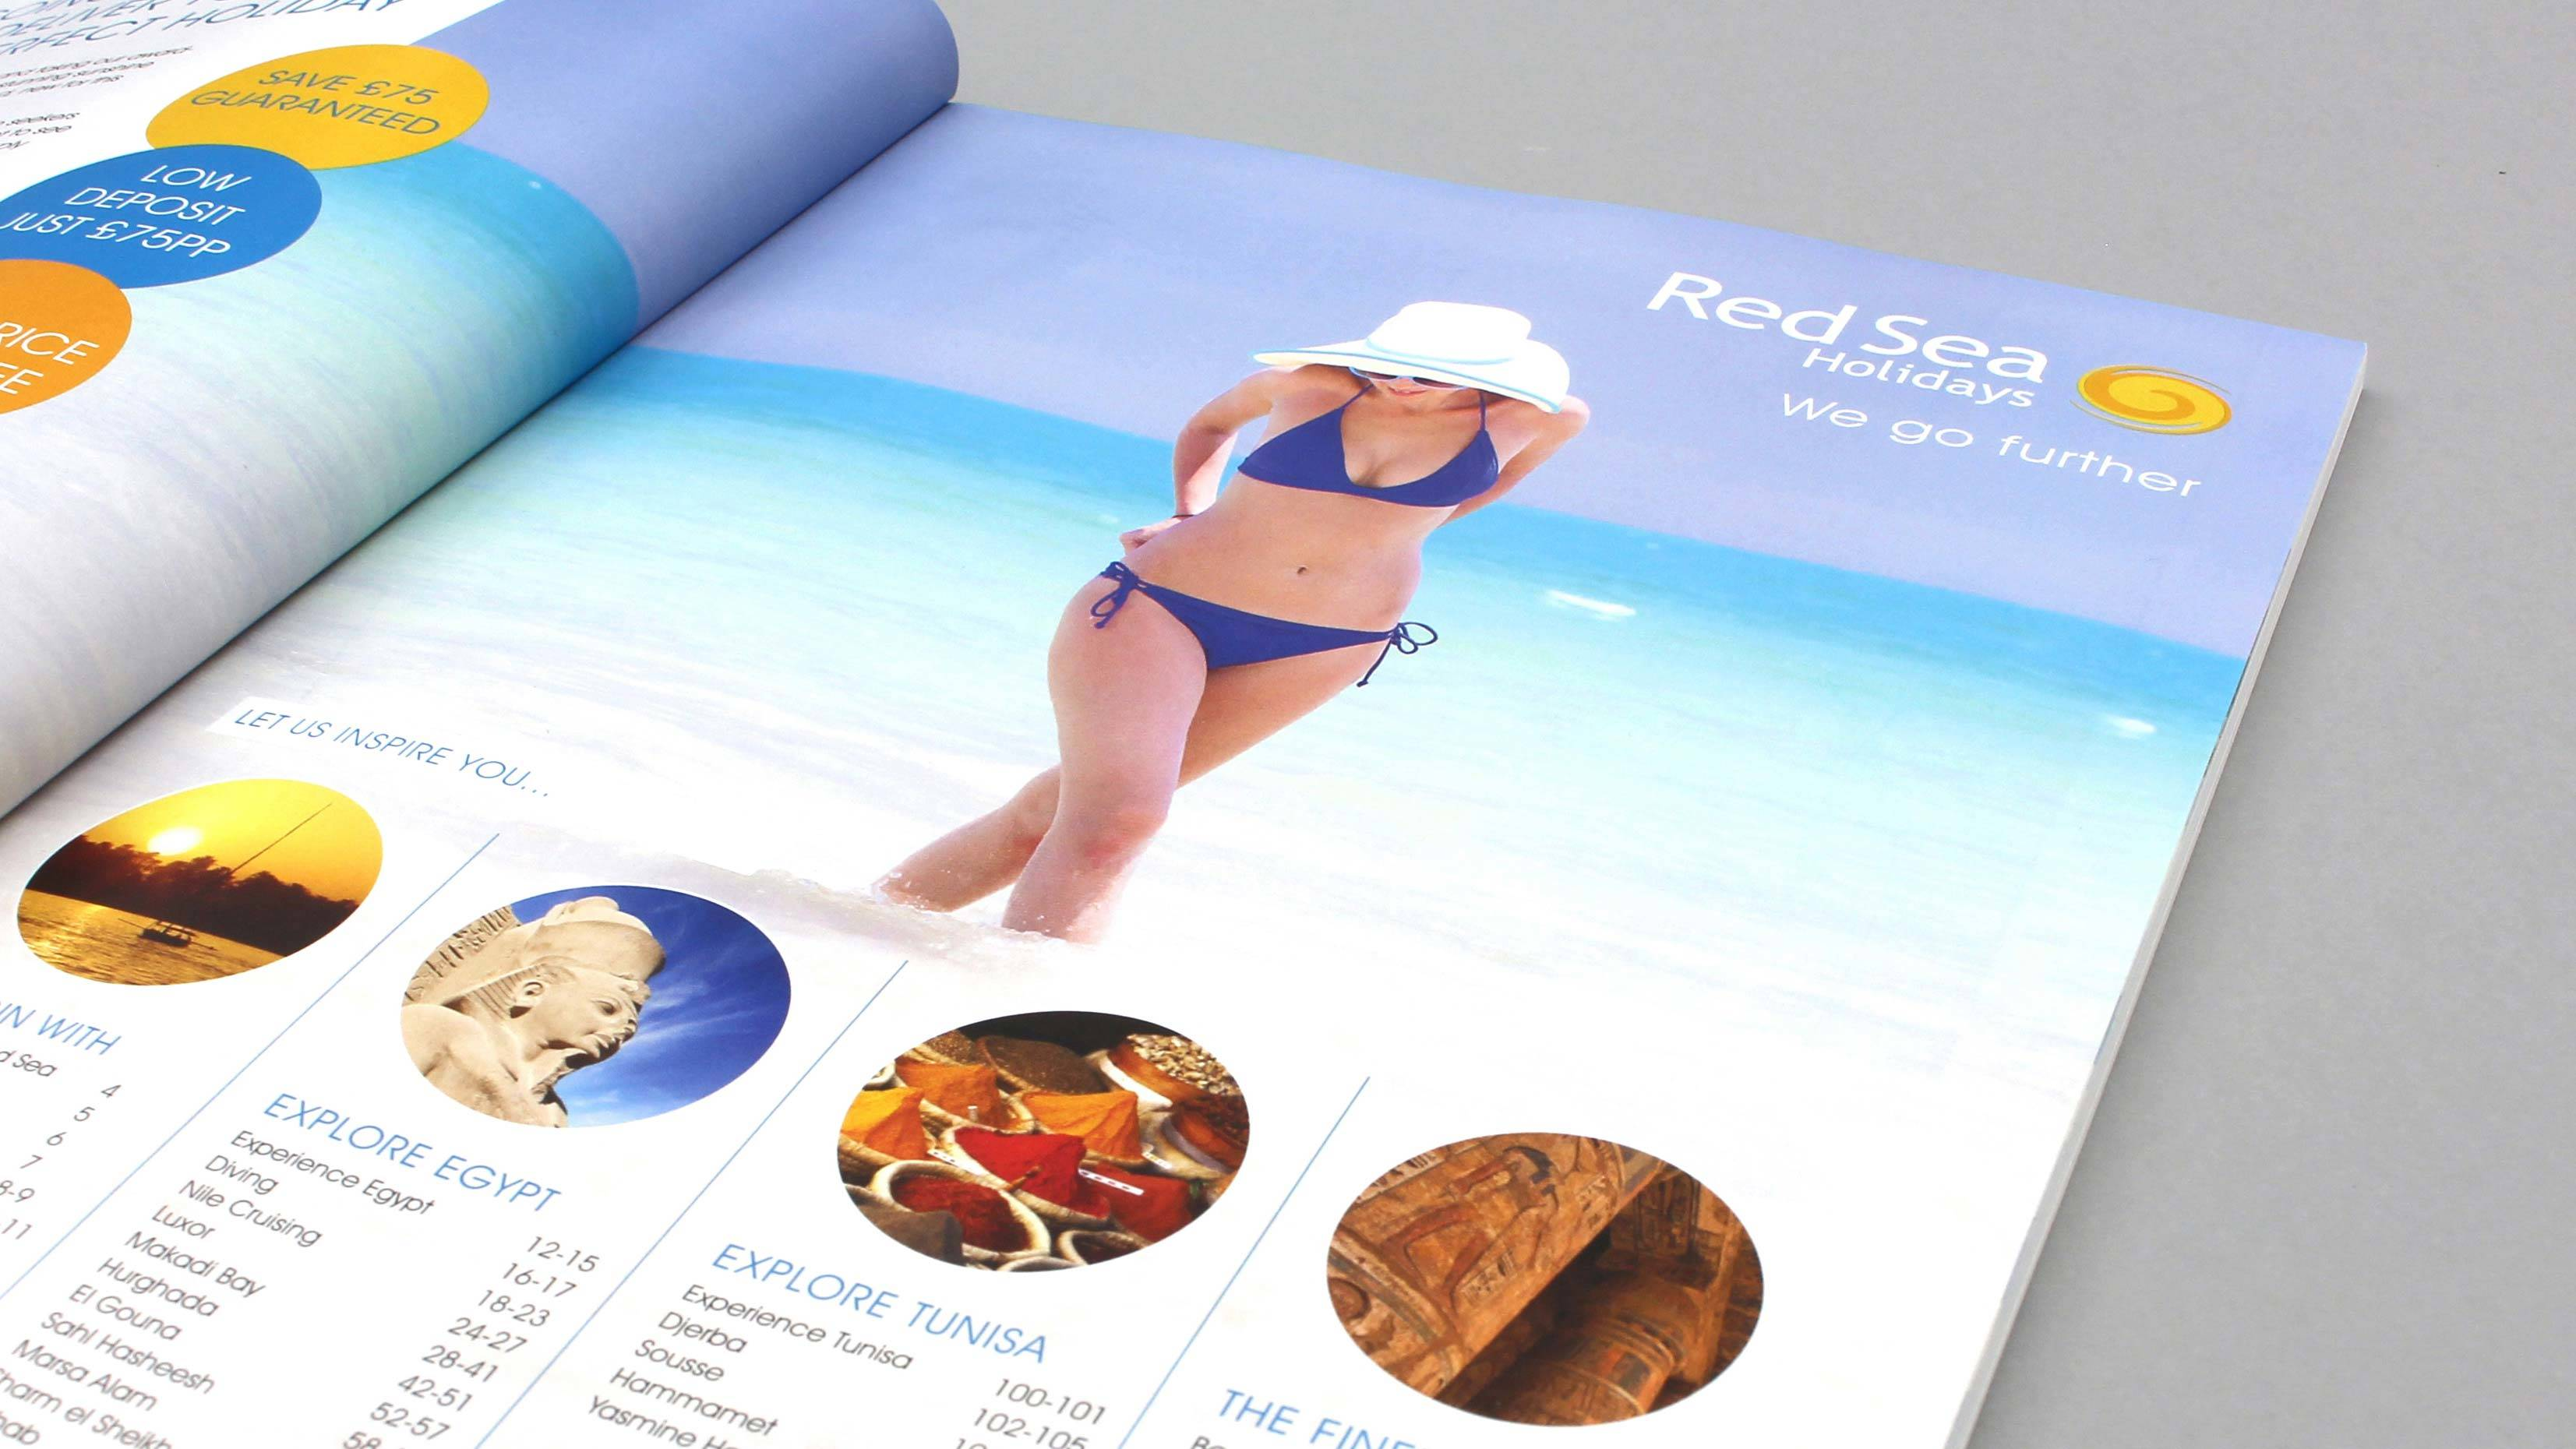 Red Sea Holidays brochure traffic going further spread